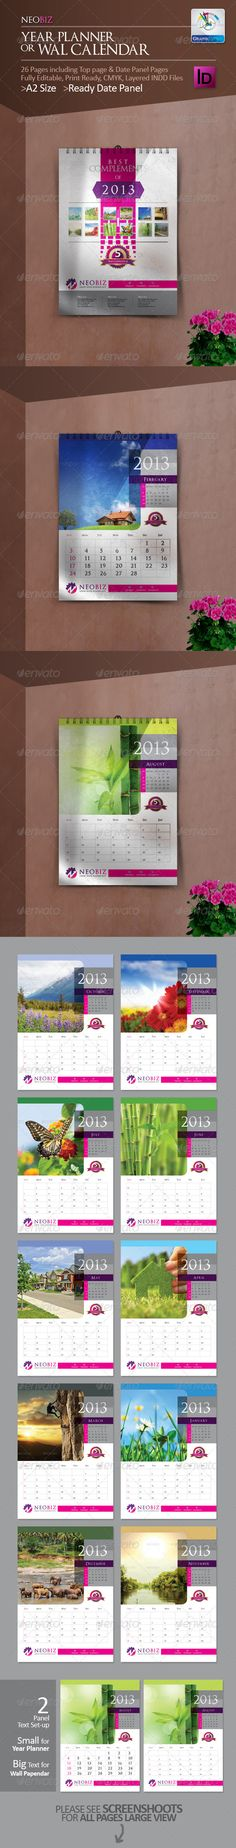 Wall Calendar 2014 | Calendar 2014, Fonts And Calendar Design